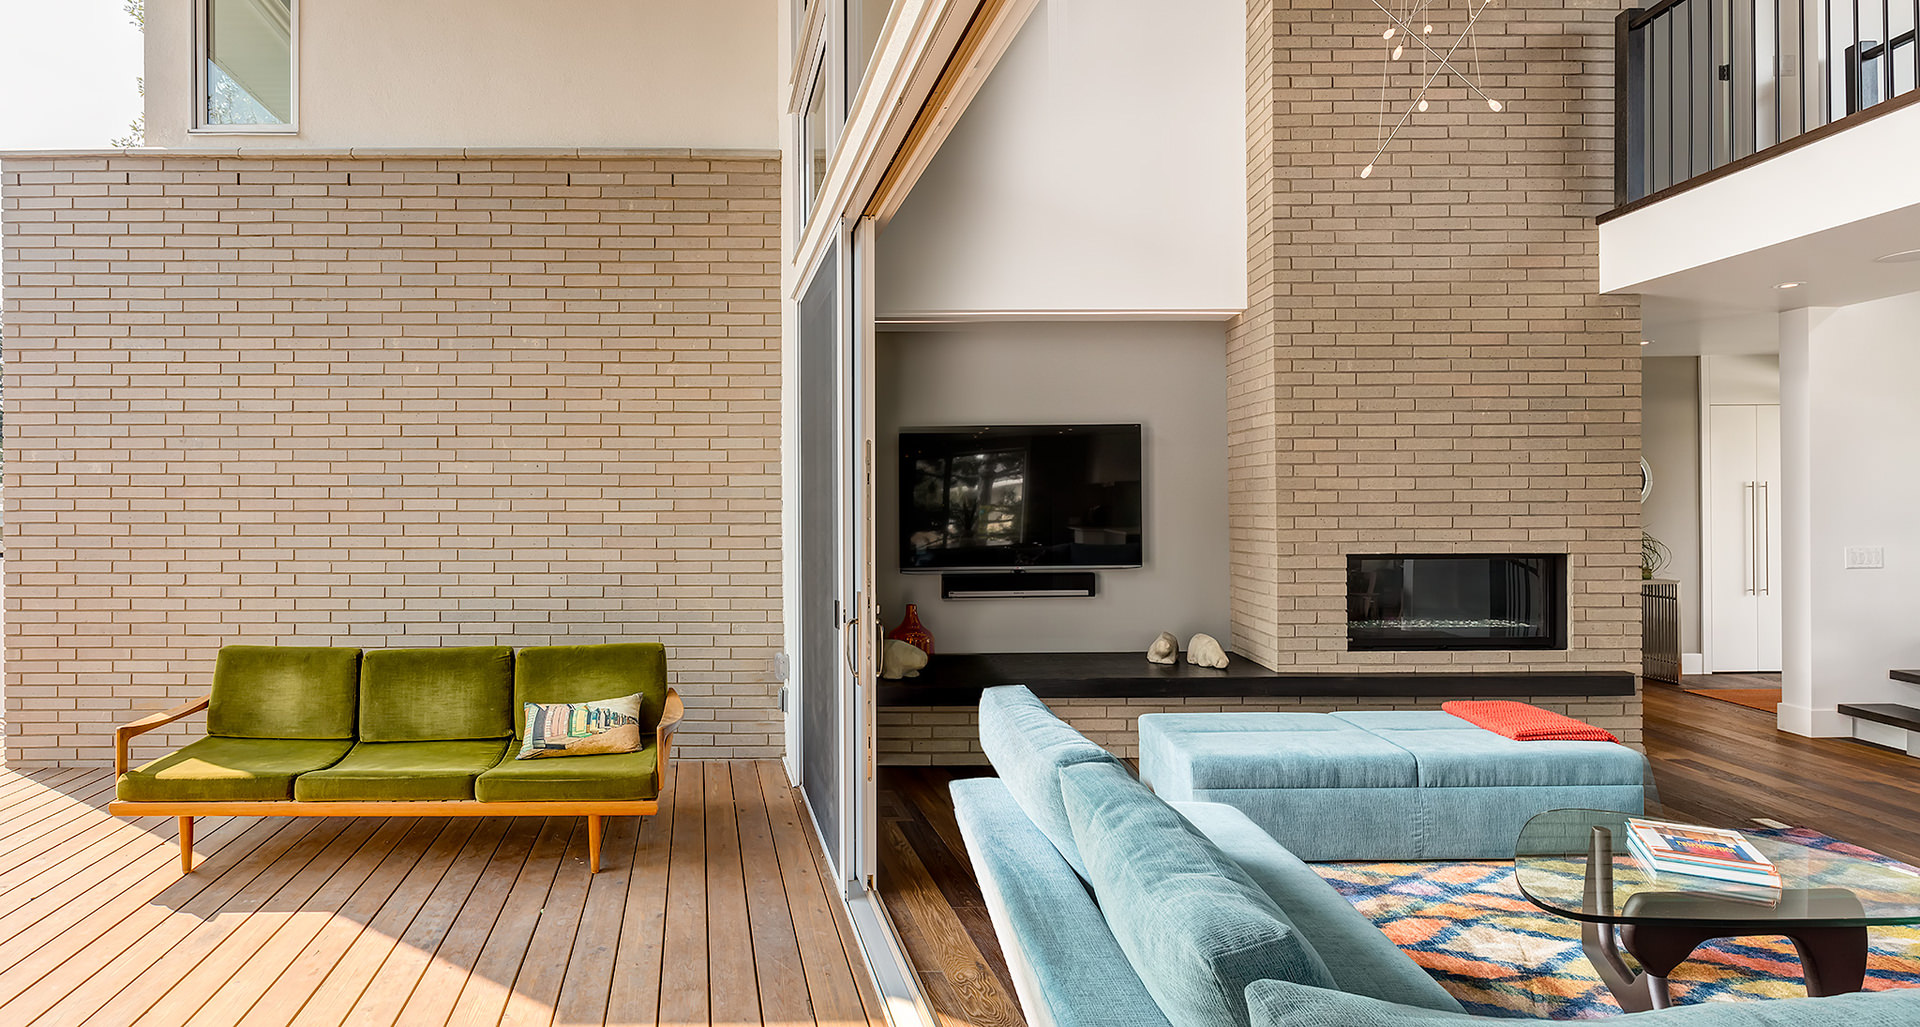 The wide entrance of this house provides an open floor concept connecting the outside porch to the living area when open. The brick wall and tongue and groove cedar floor give it a traditional yet contemporary look.